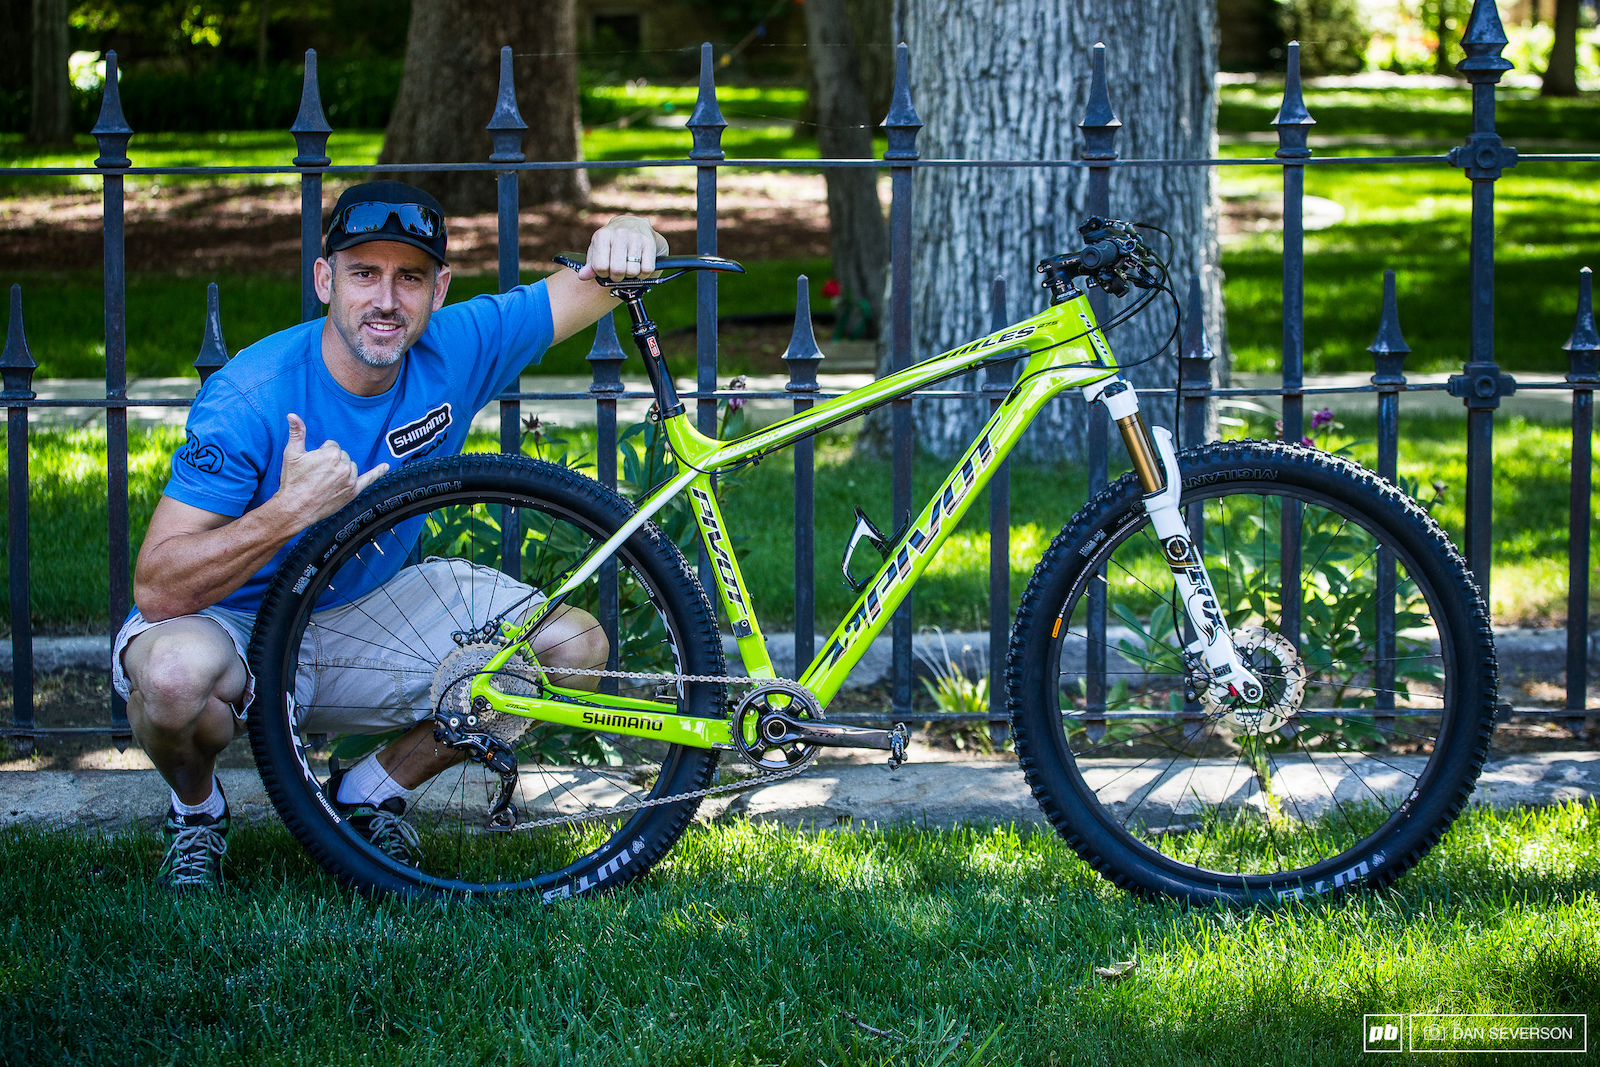 Joe Lawwill takes a minute to show off his Shimano equipped backcountry weapon that he will be racing on Sunday.